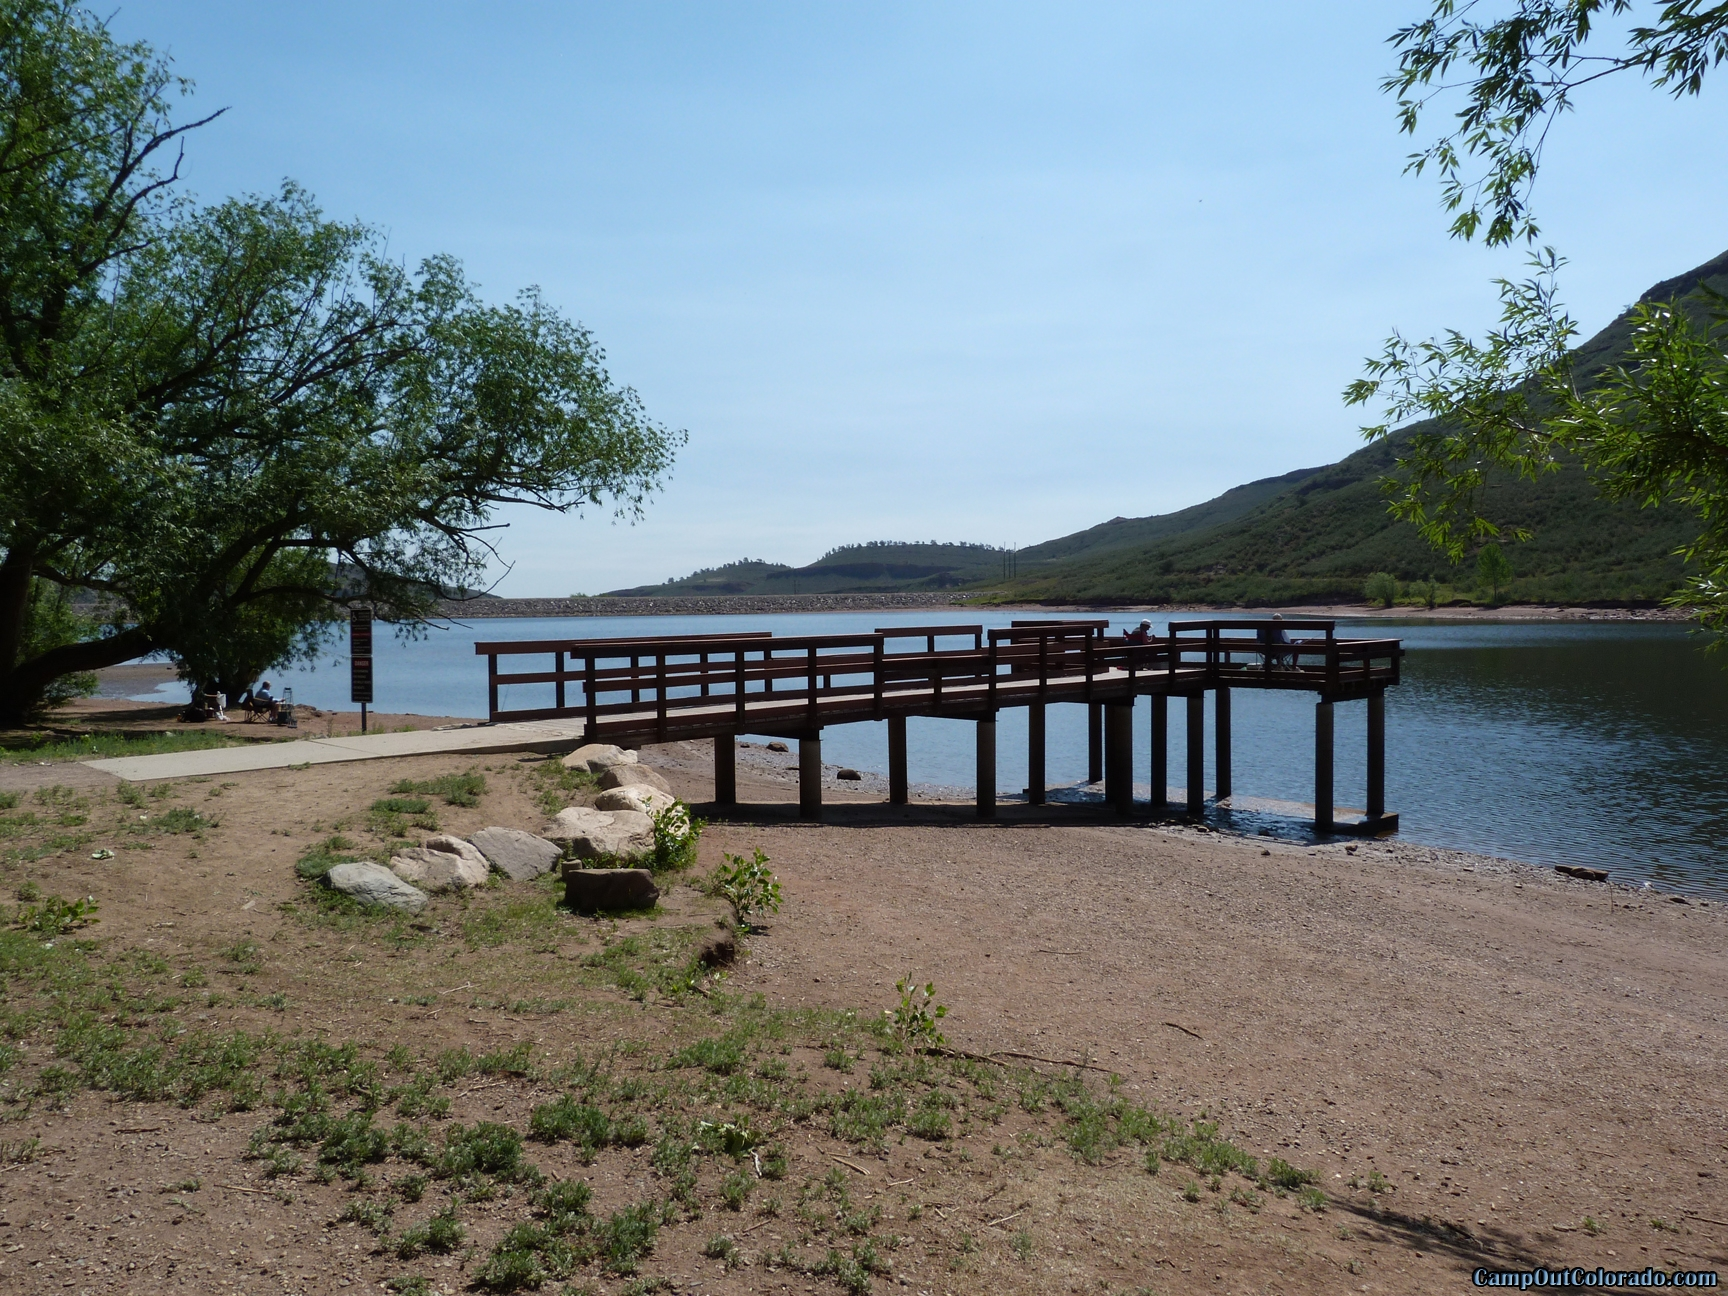 camp-out-colorado-flatirons-reservoir-fishing-pier